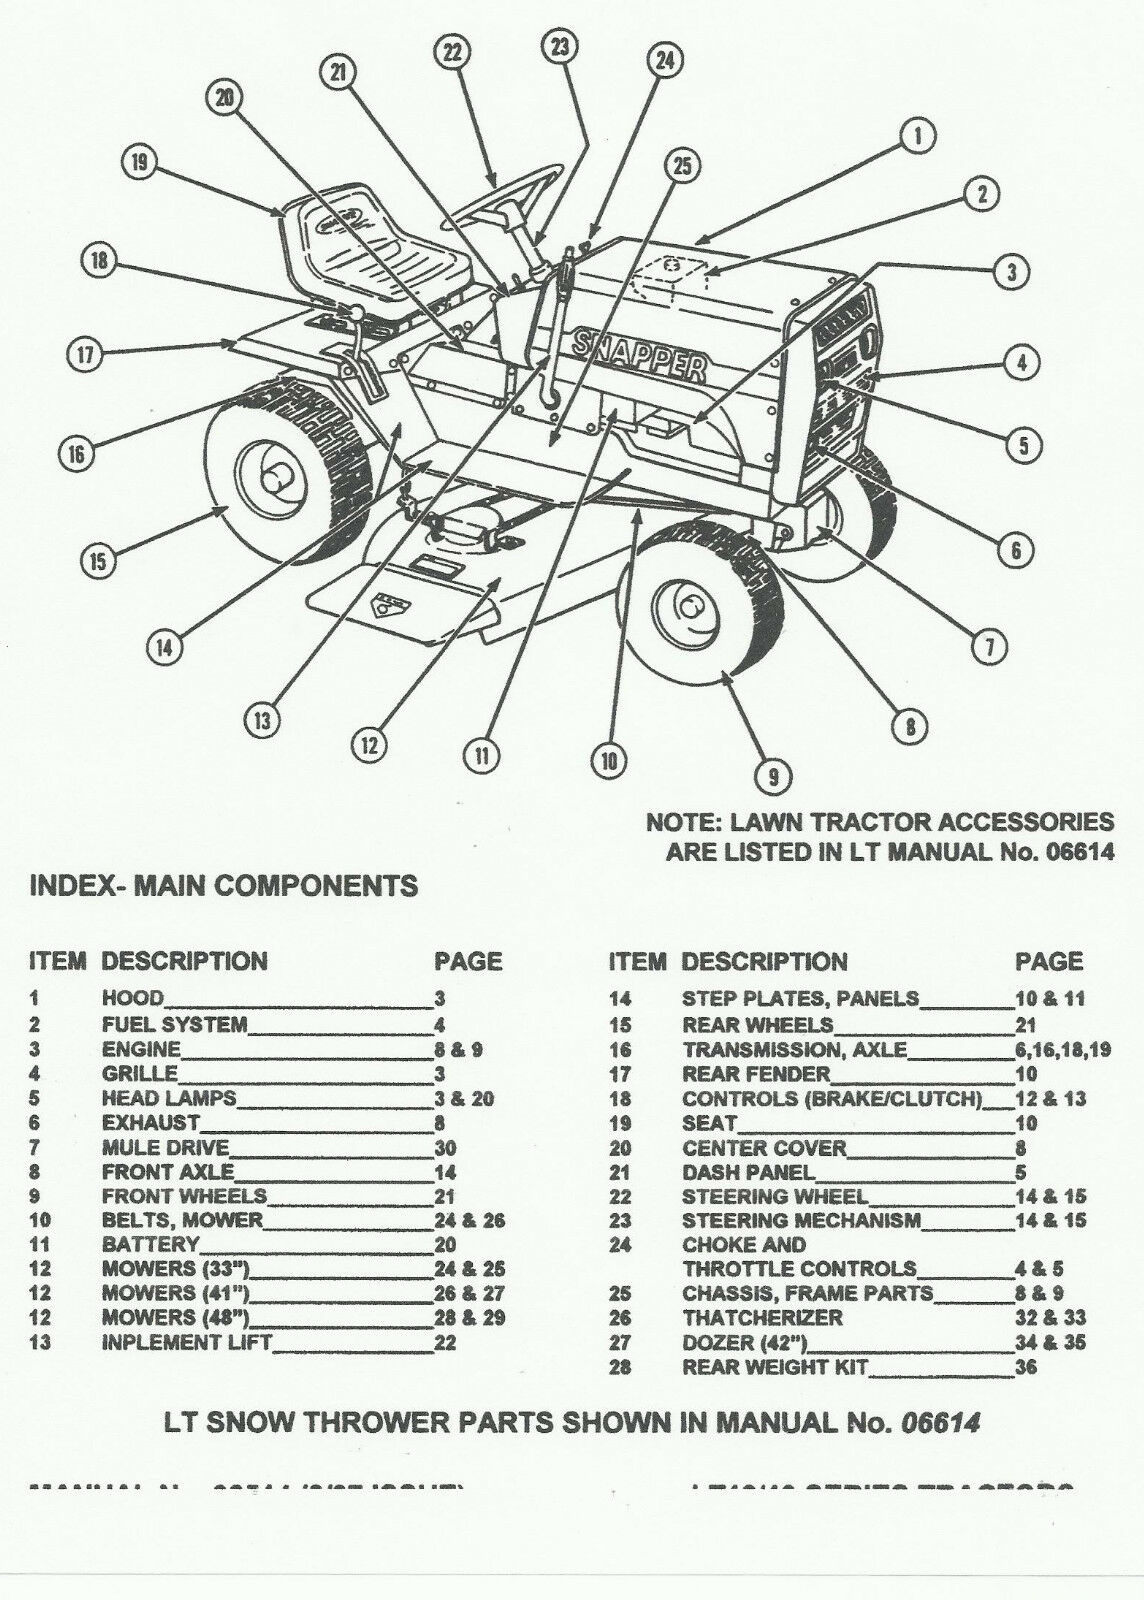 hight resolution of 1987 porsche 944 engine diagram html imageresizertool com porsche 911 fuse box diagram porsche 928 fuse